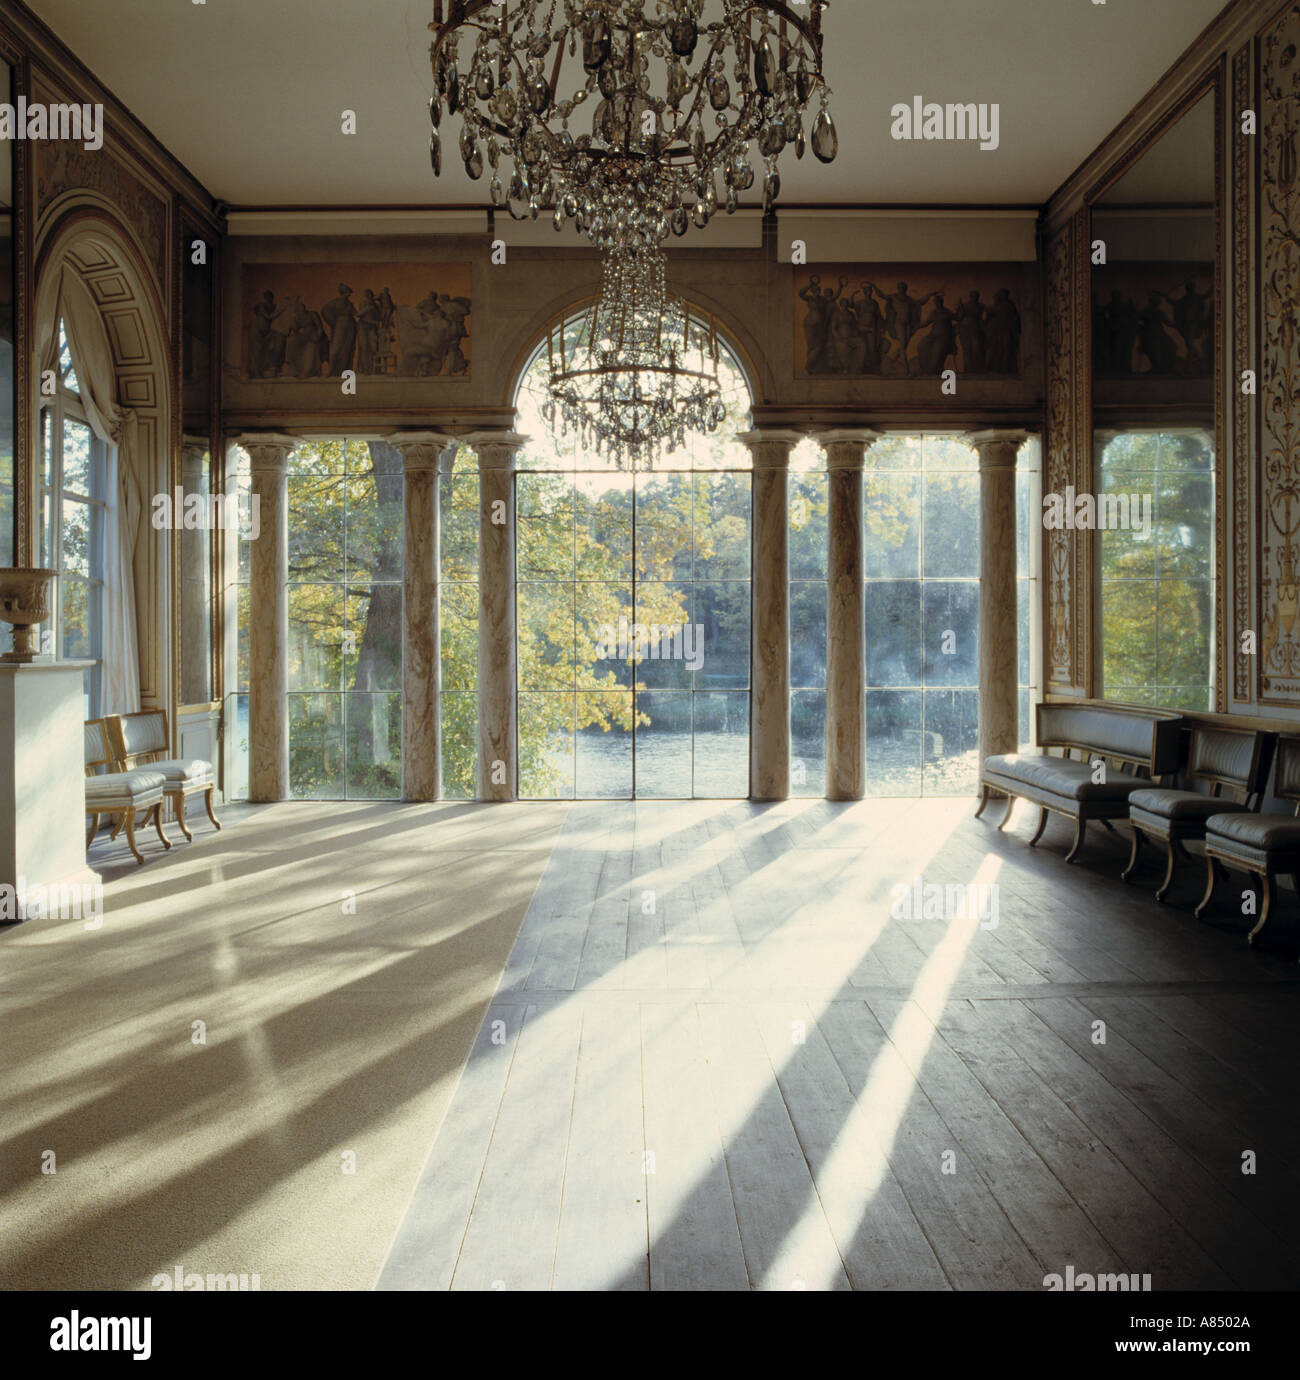 Sunlight floor-boards in large hall with antique glass chandeliers and tall  arched windows with view of gardens - Sunlight Floor-boards In Large Hall With Antique Glass Chandeliers